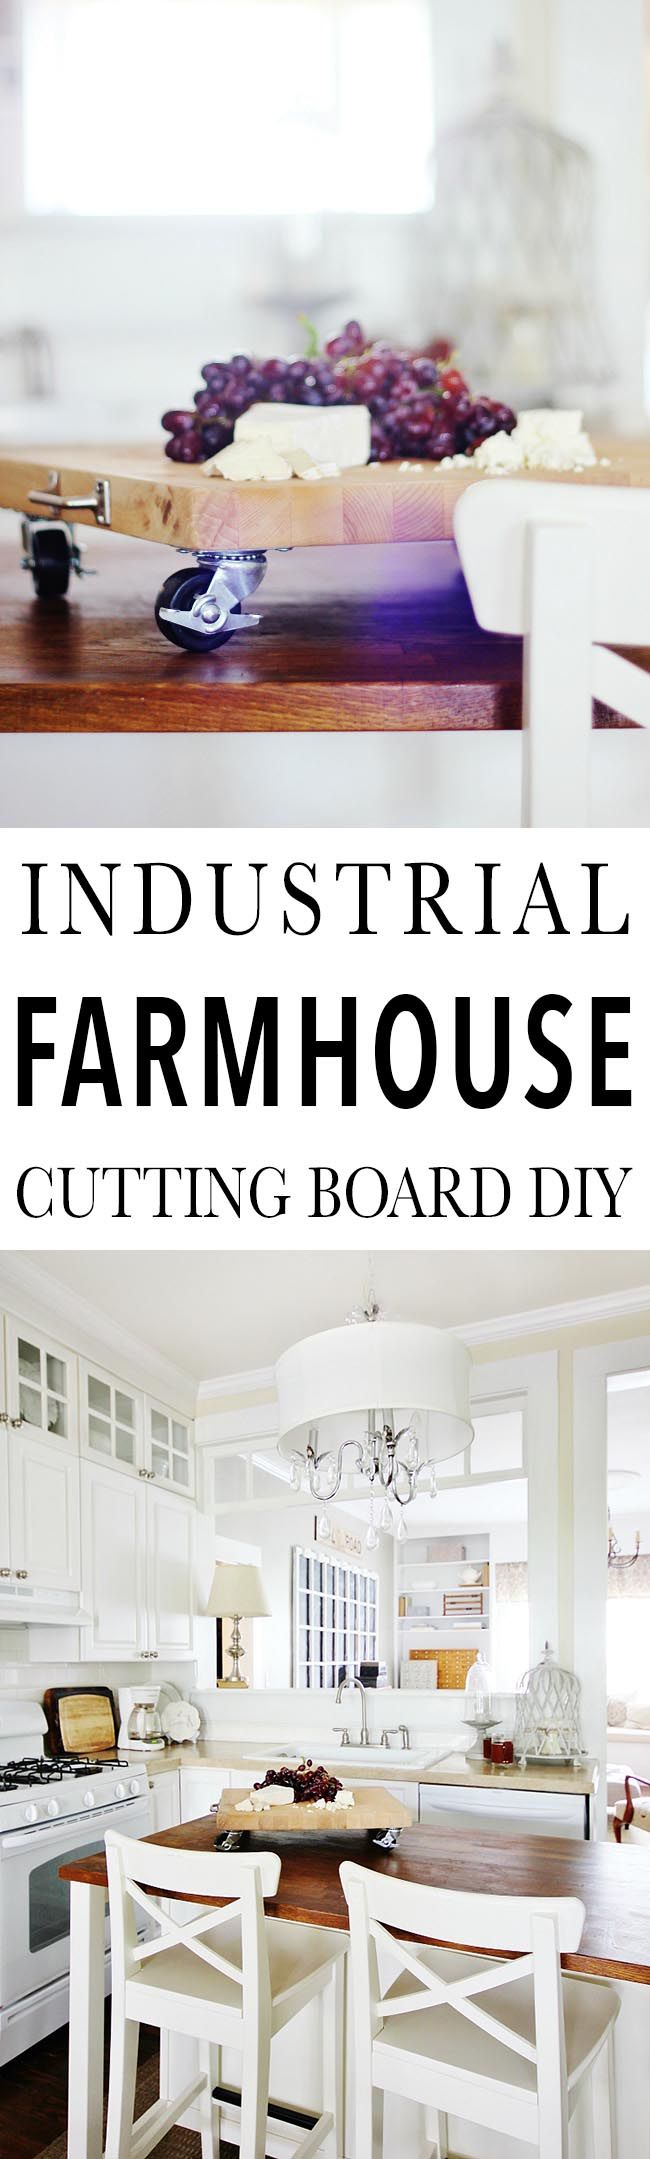 Best 25+ Farmhouse cutting boards ideas on Pinterest | Kitchen ...